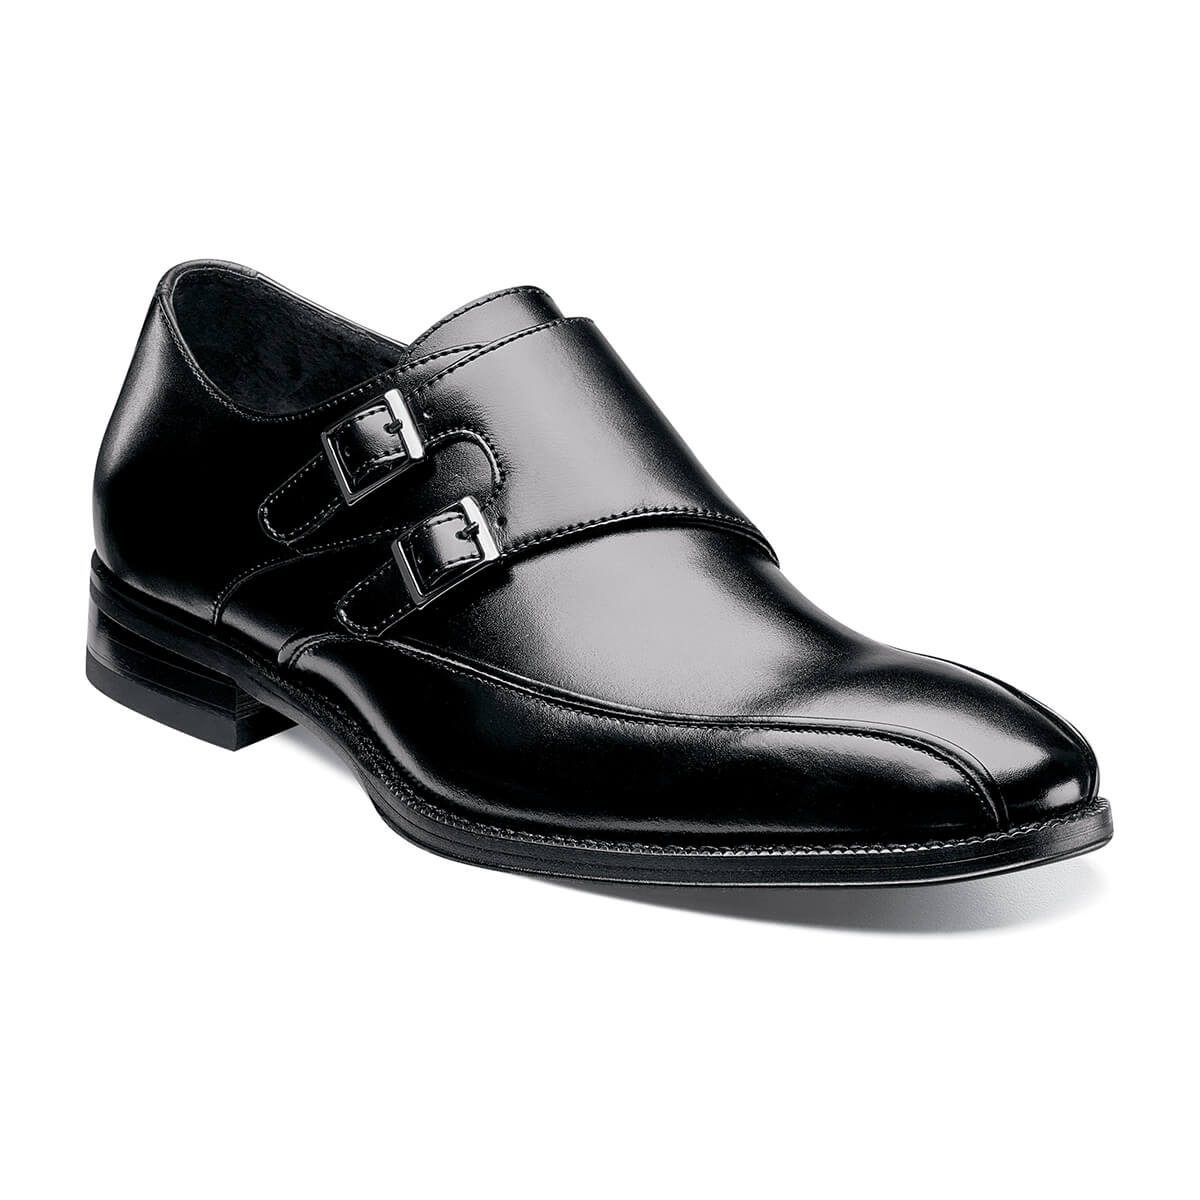 Kildaire Bike Toe Monk Strap Shoes - Dapperfam.com